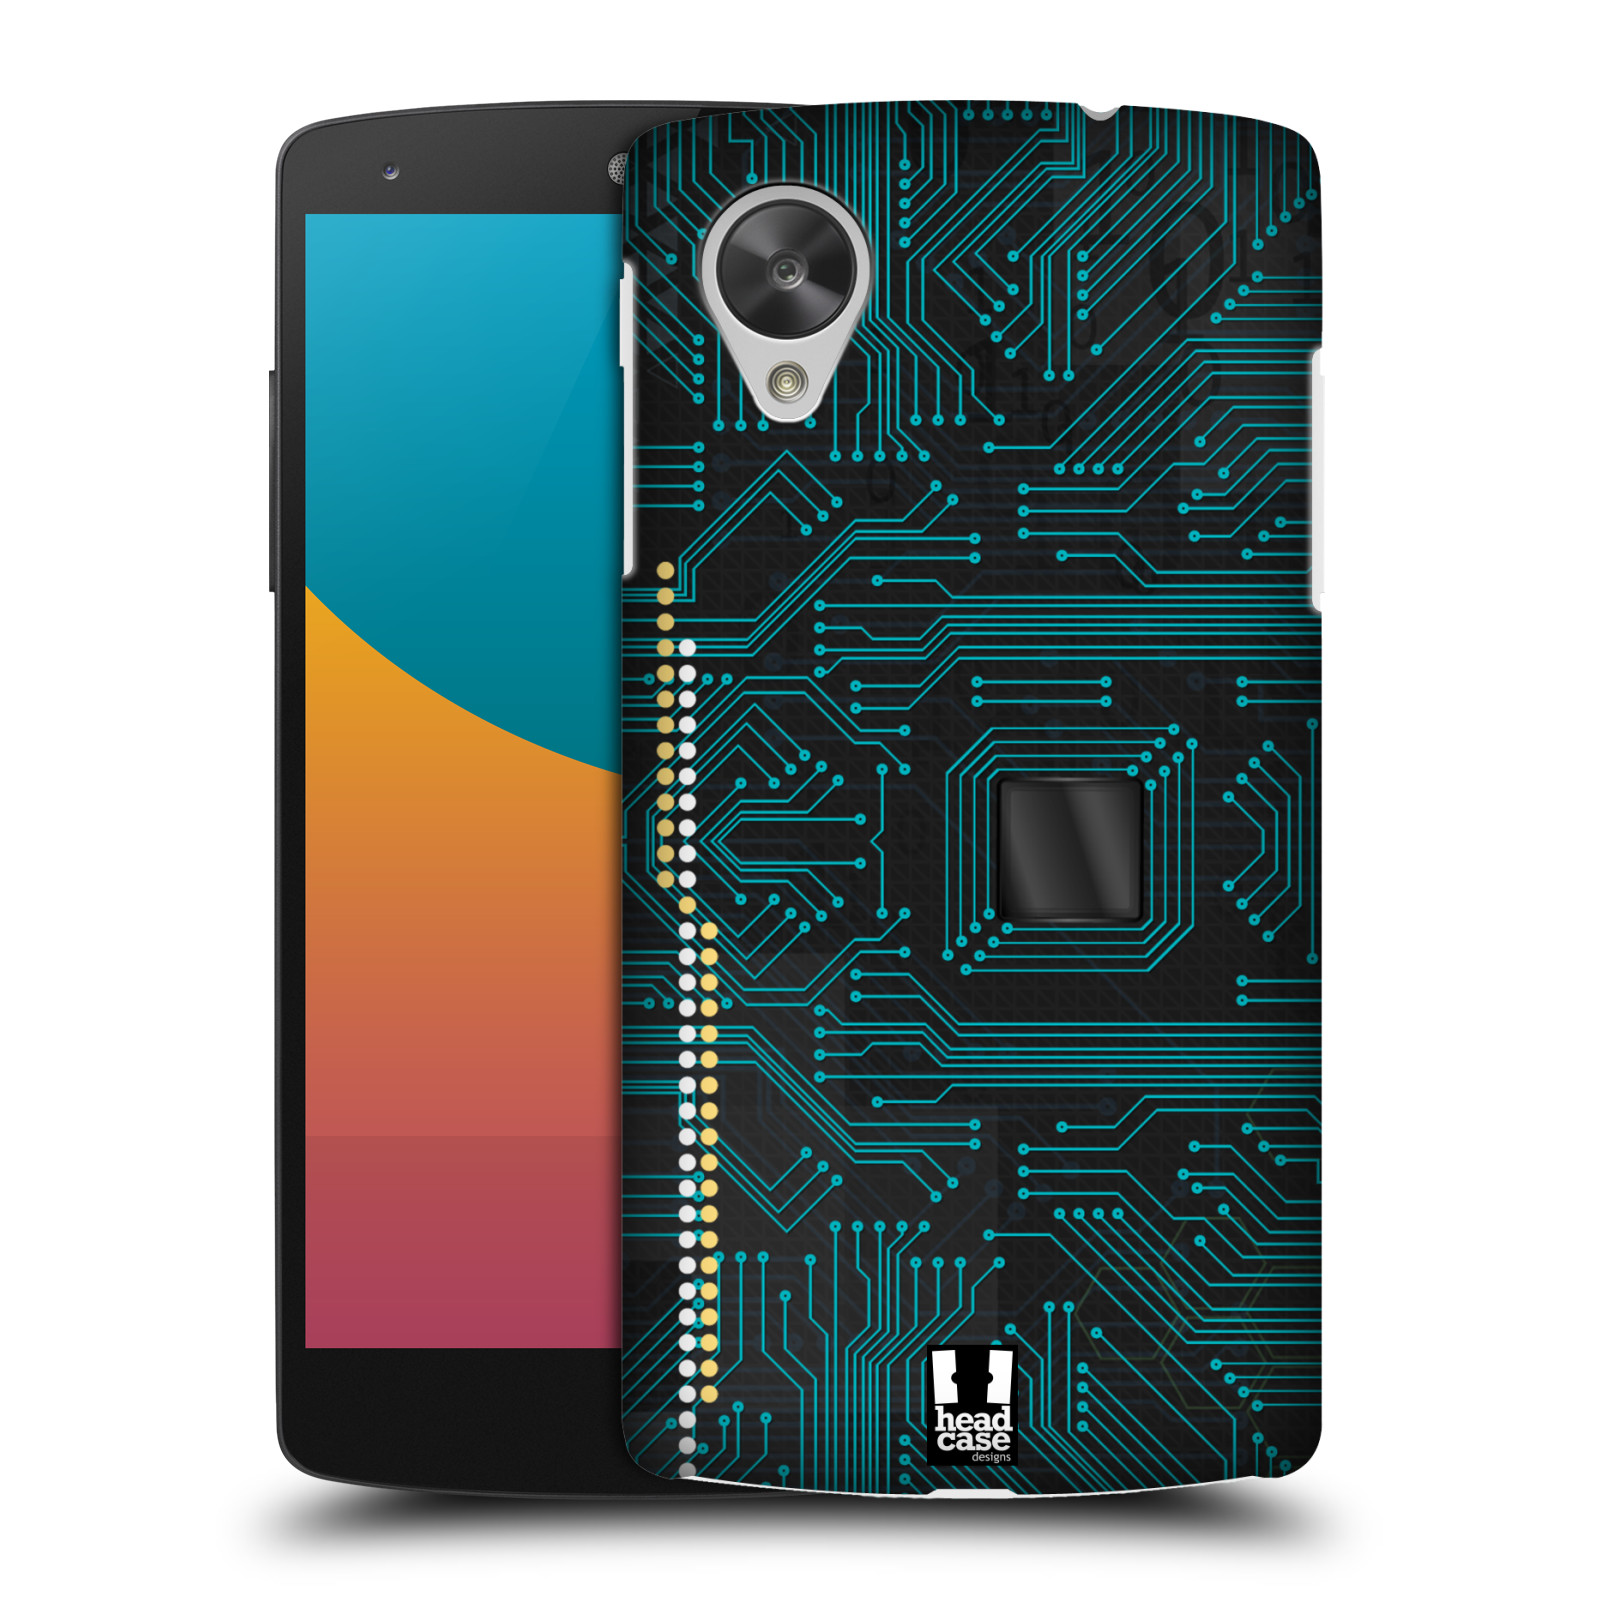 HEAD CASE DESIGNS CIRCUIT BOARD CASE COVER FOR LG GOOGLE NEXUS 5 D821